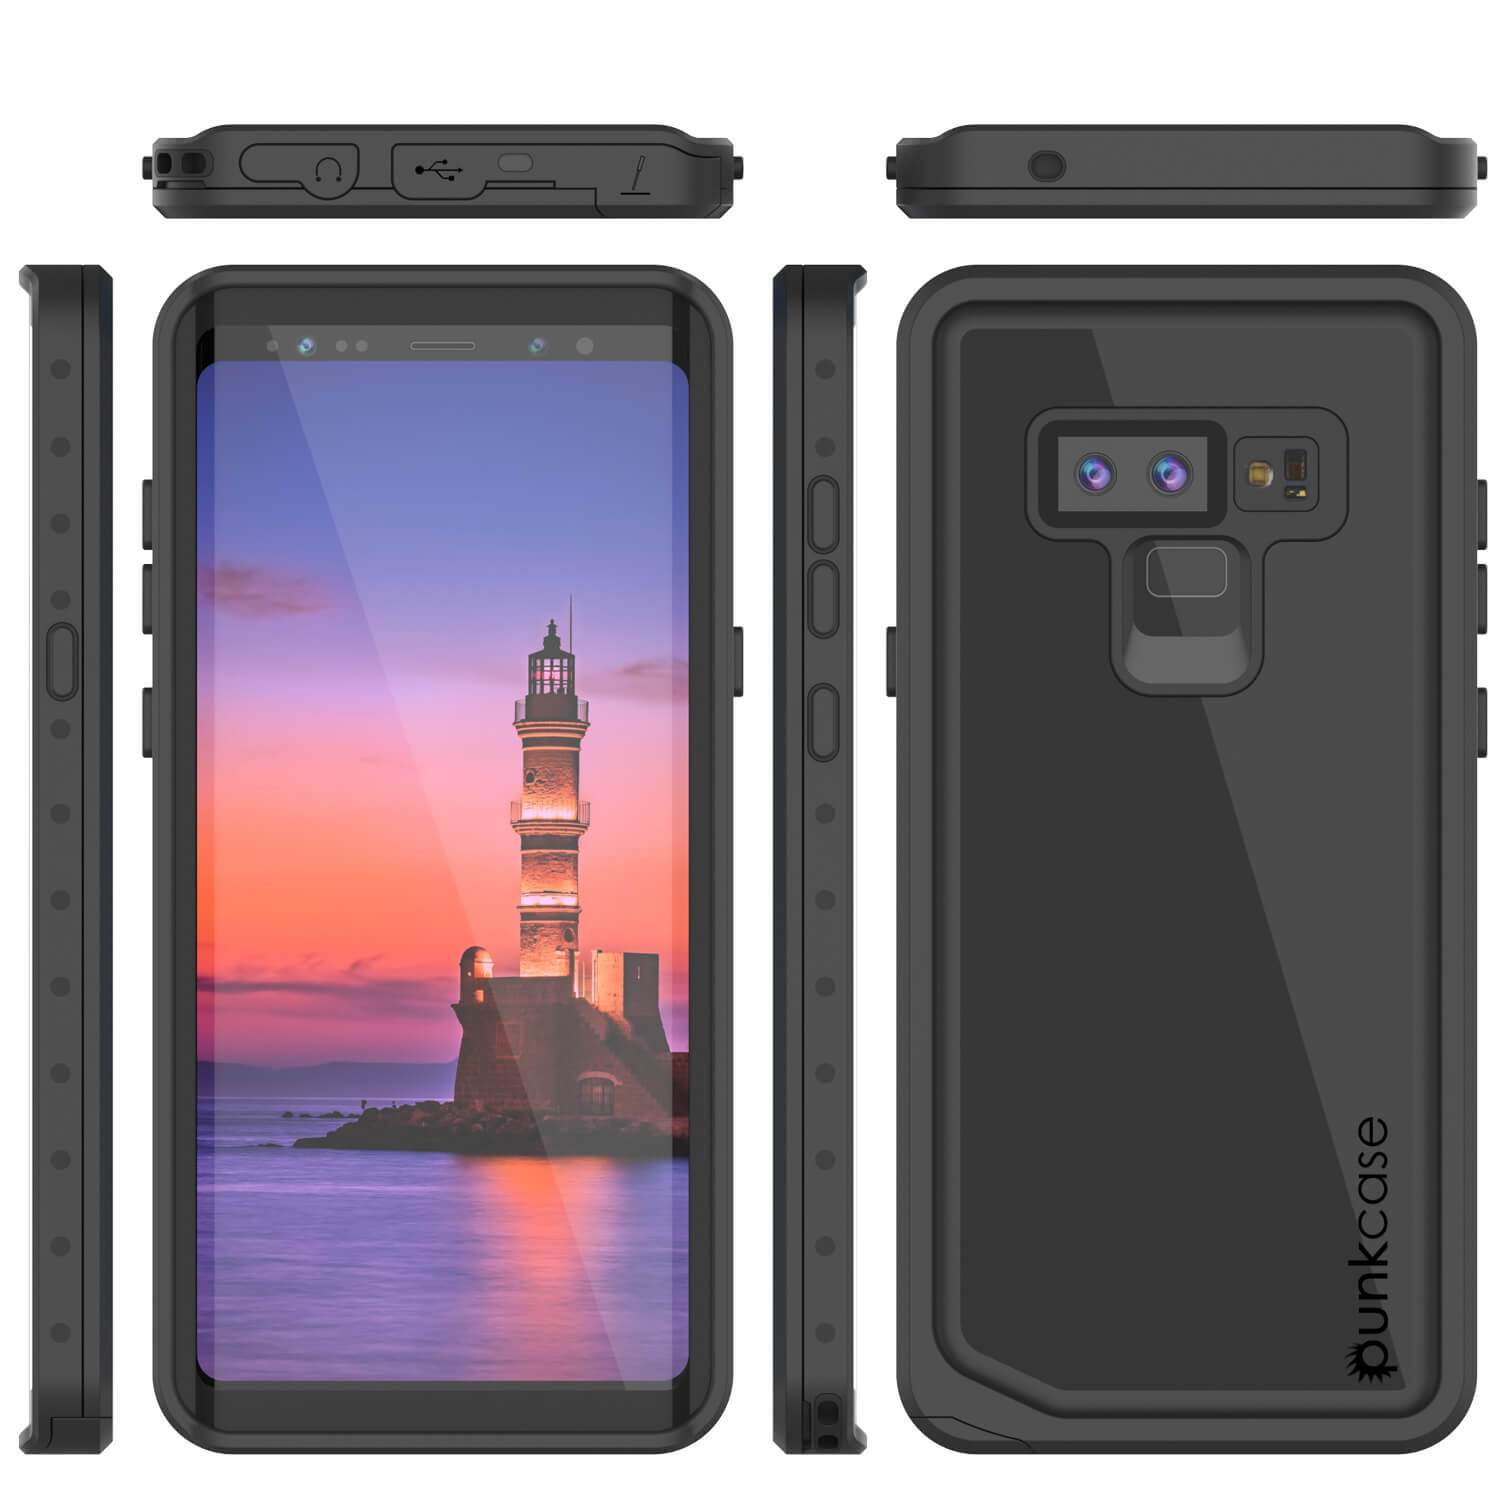 Galaxy Note 9 Waterproof Case PunkCase StudStar Black Thin 6.6ft Underwater Shock/Snow Proof